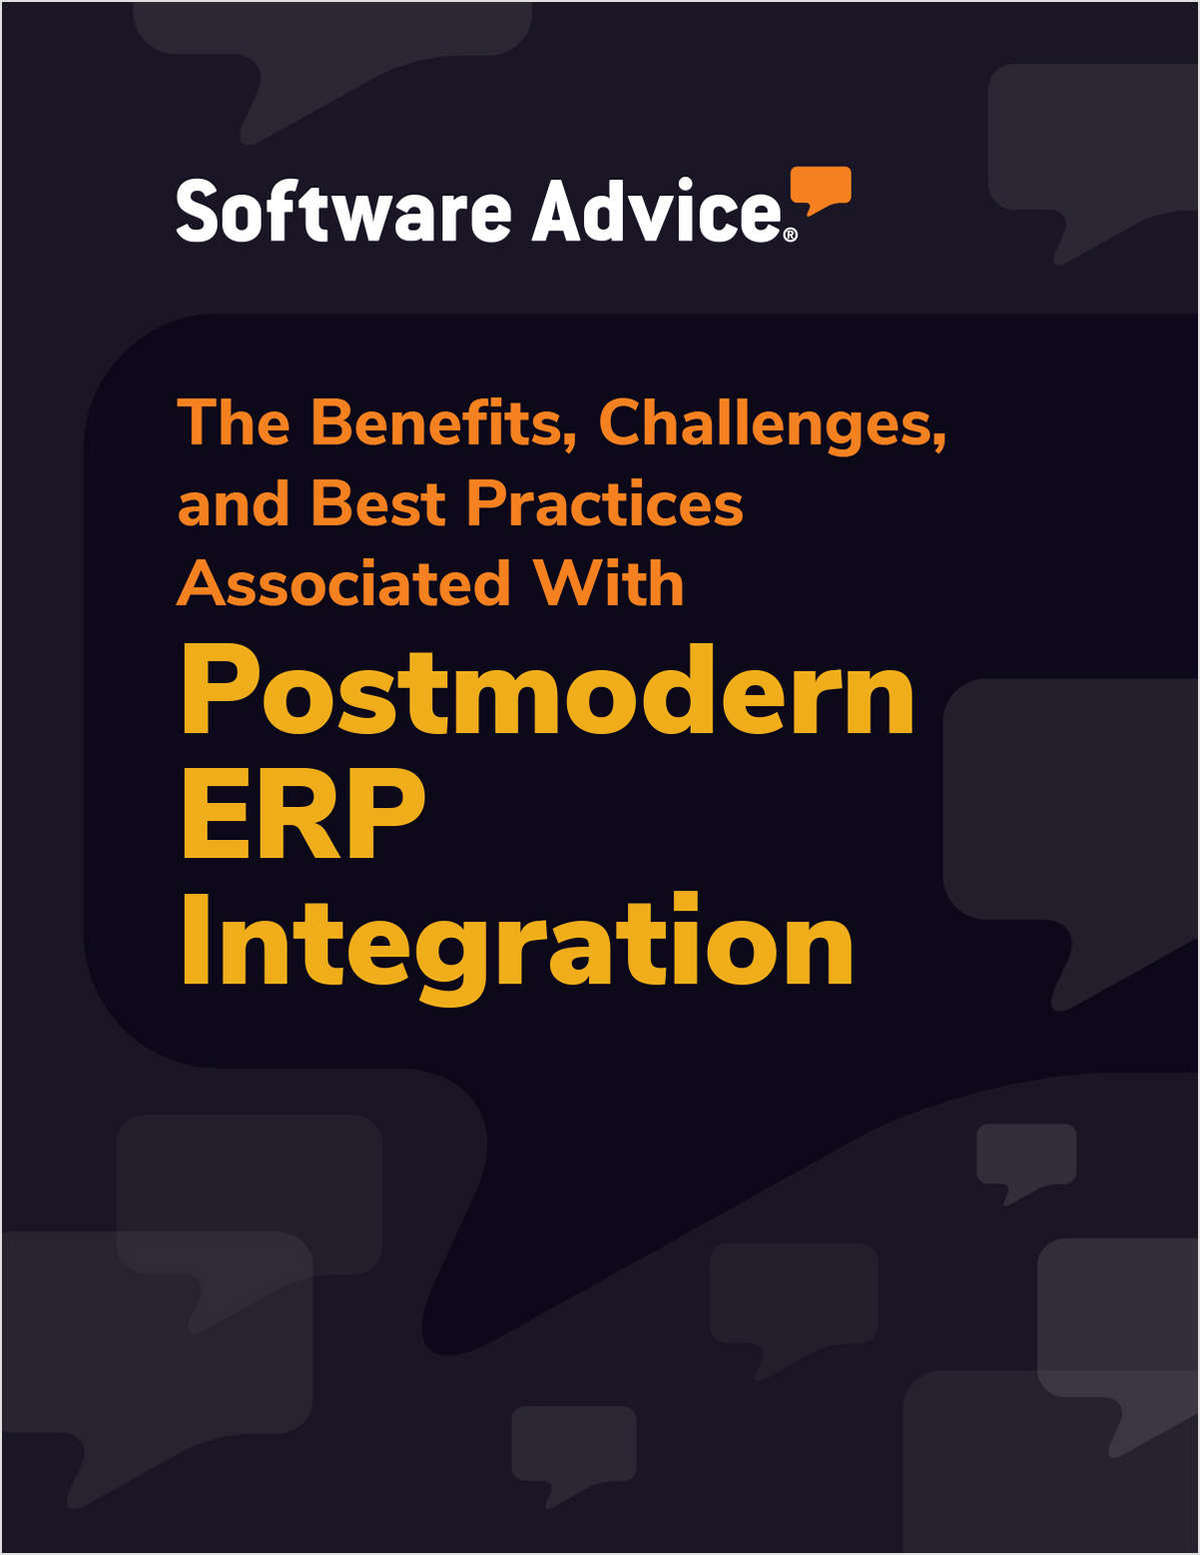 The Benefits, Challenges, and Best Practices Associated With Postmodern ERP Integration